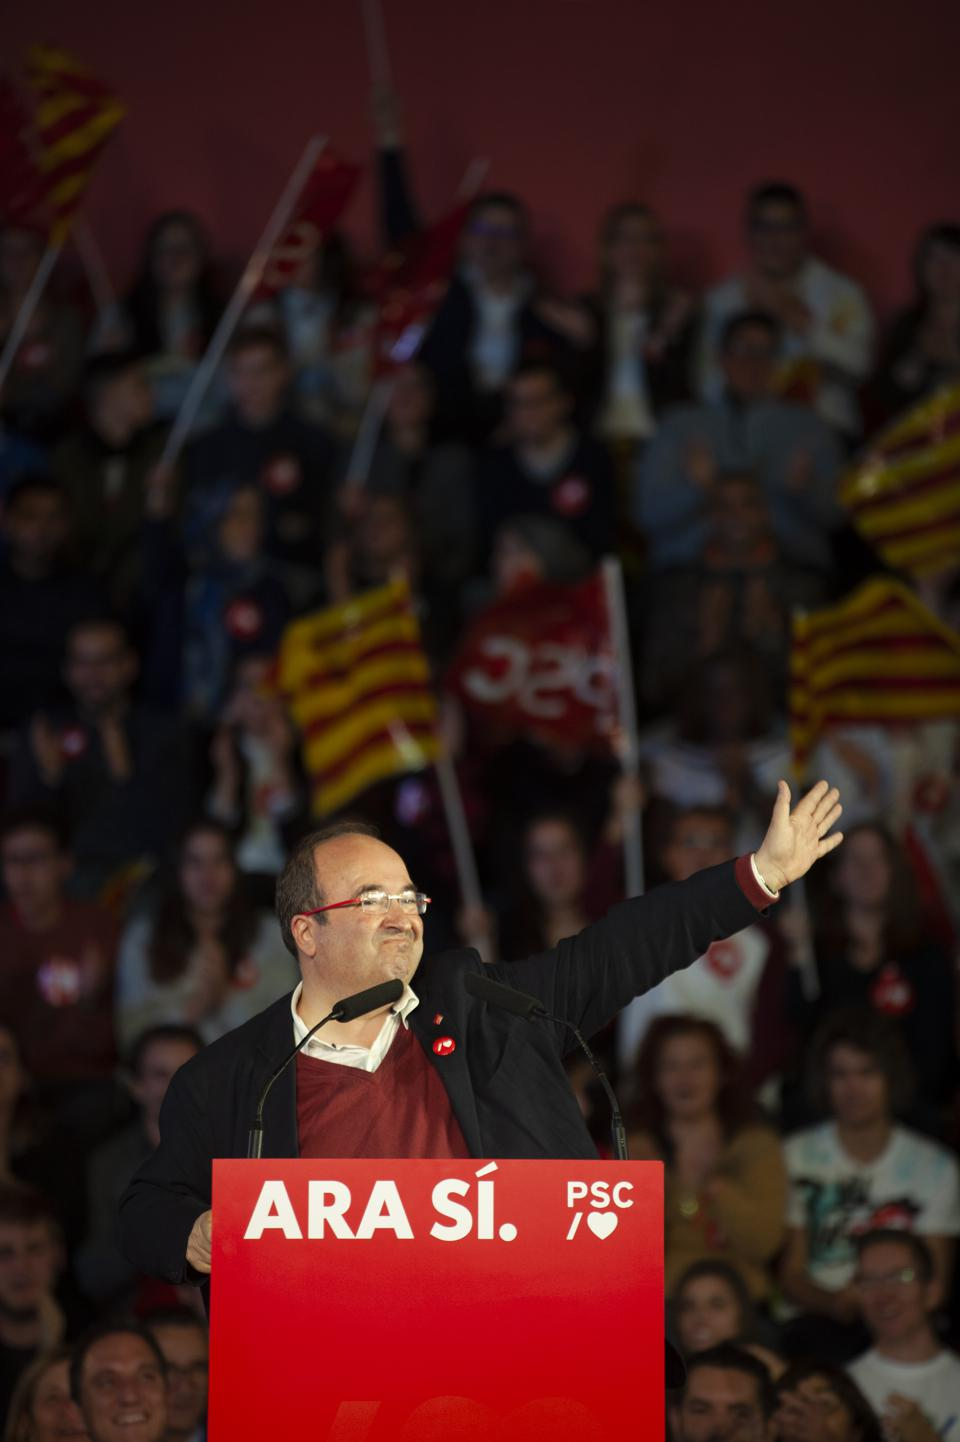 The PSC Socialist Party campaigning for the Sunday general elections in Spain